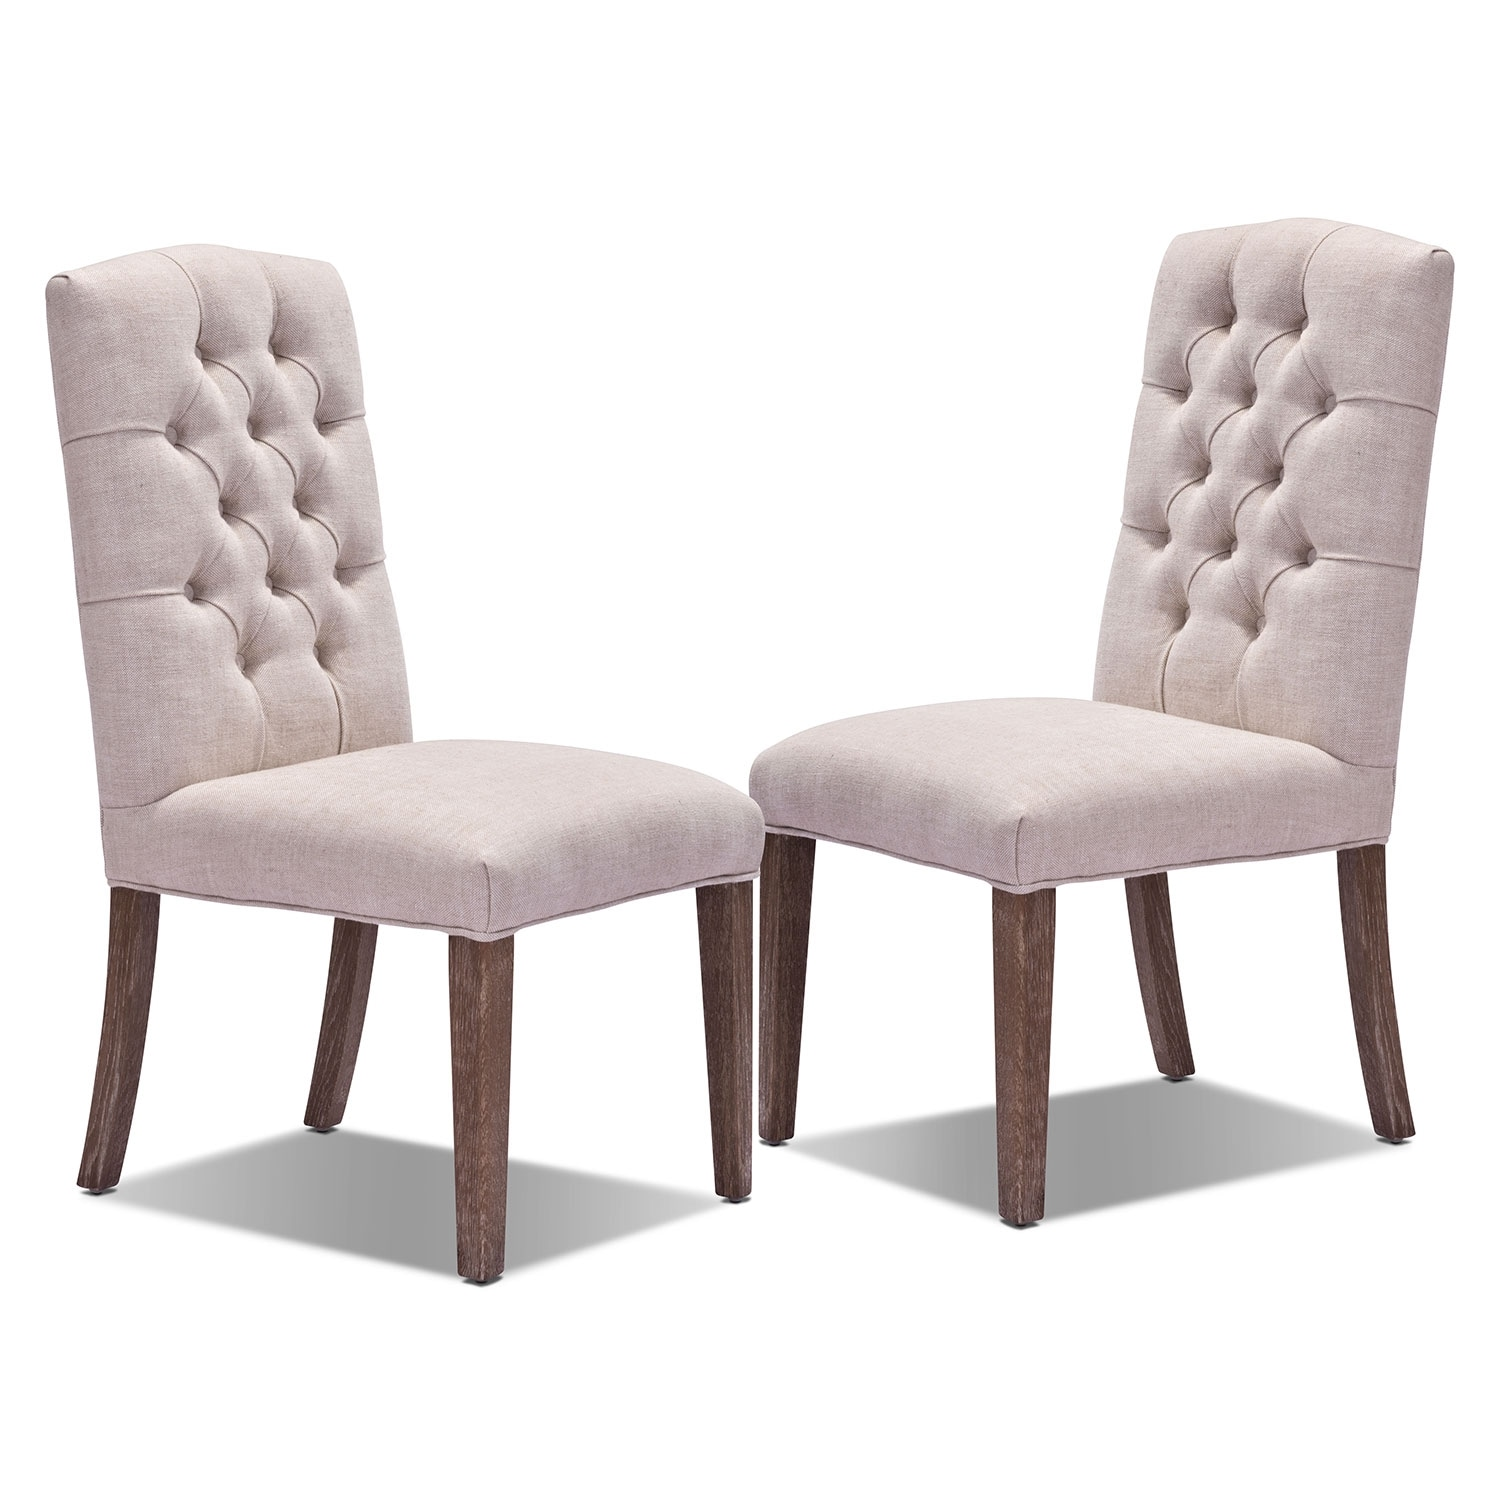 Dining room chairs seating american signature furniture for Furniture chairs